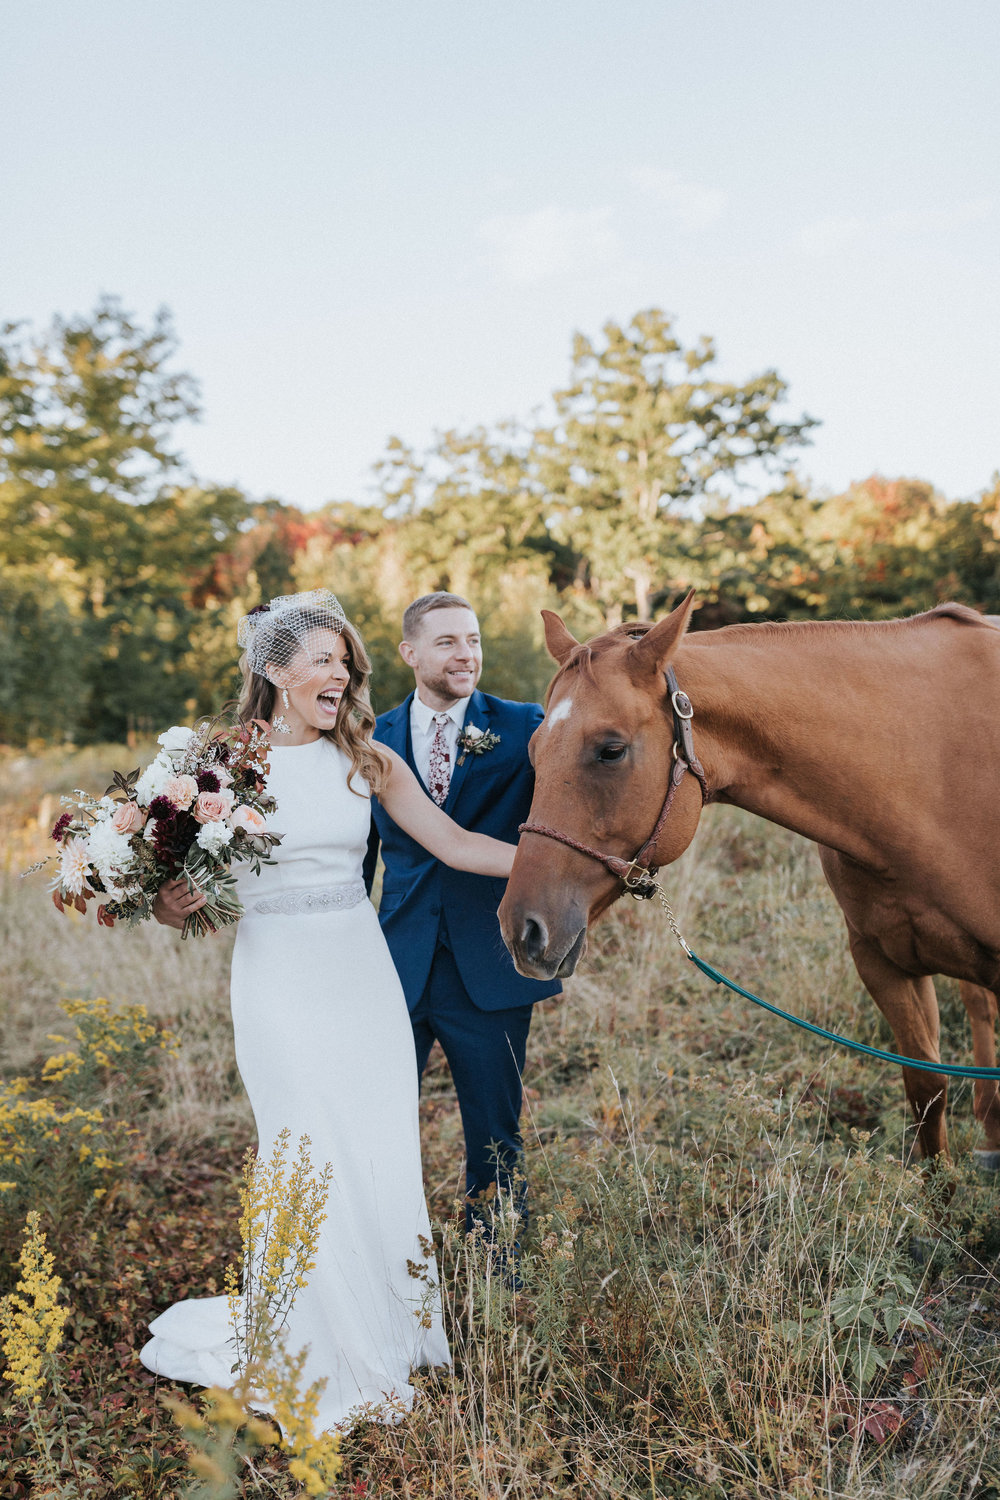 Allie_Greg_Beech_Hill_Barn_Wedding_Portraits-287.jpg